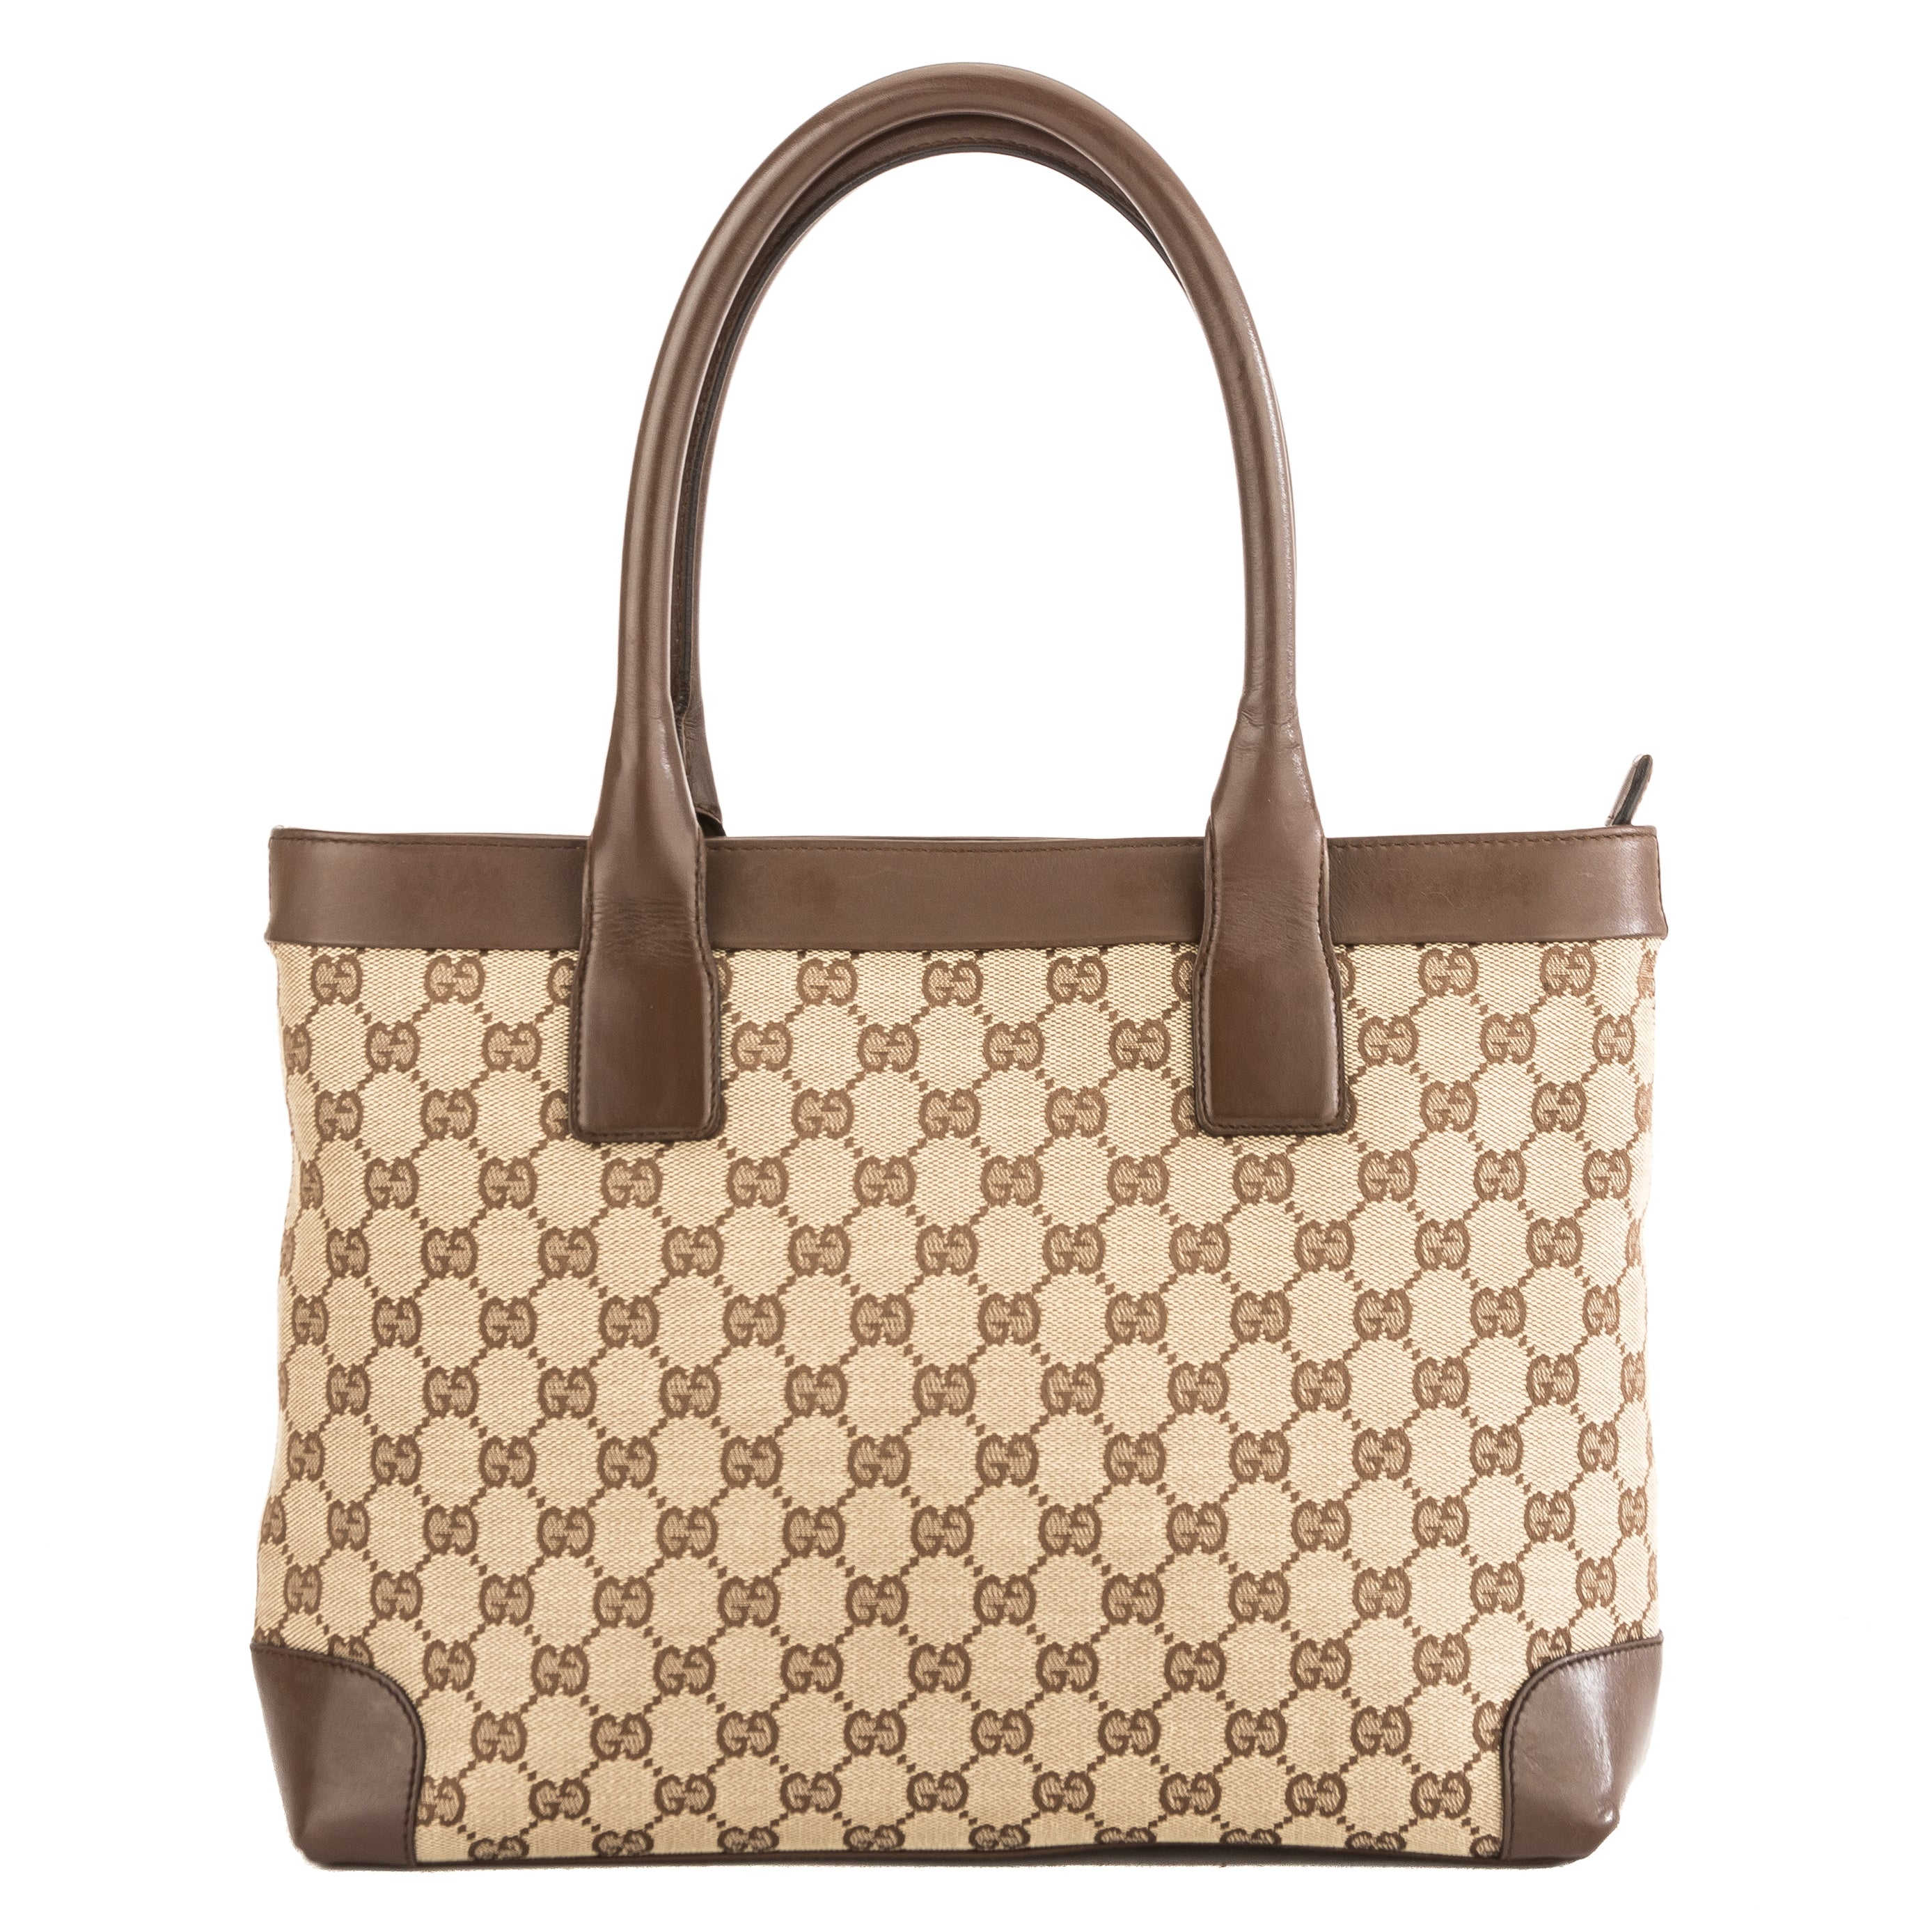 4346a098604a Gucci Brown Leather GG Canvas Medium Tote Bag (Pre Owned) - 3864011 ...